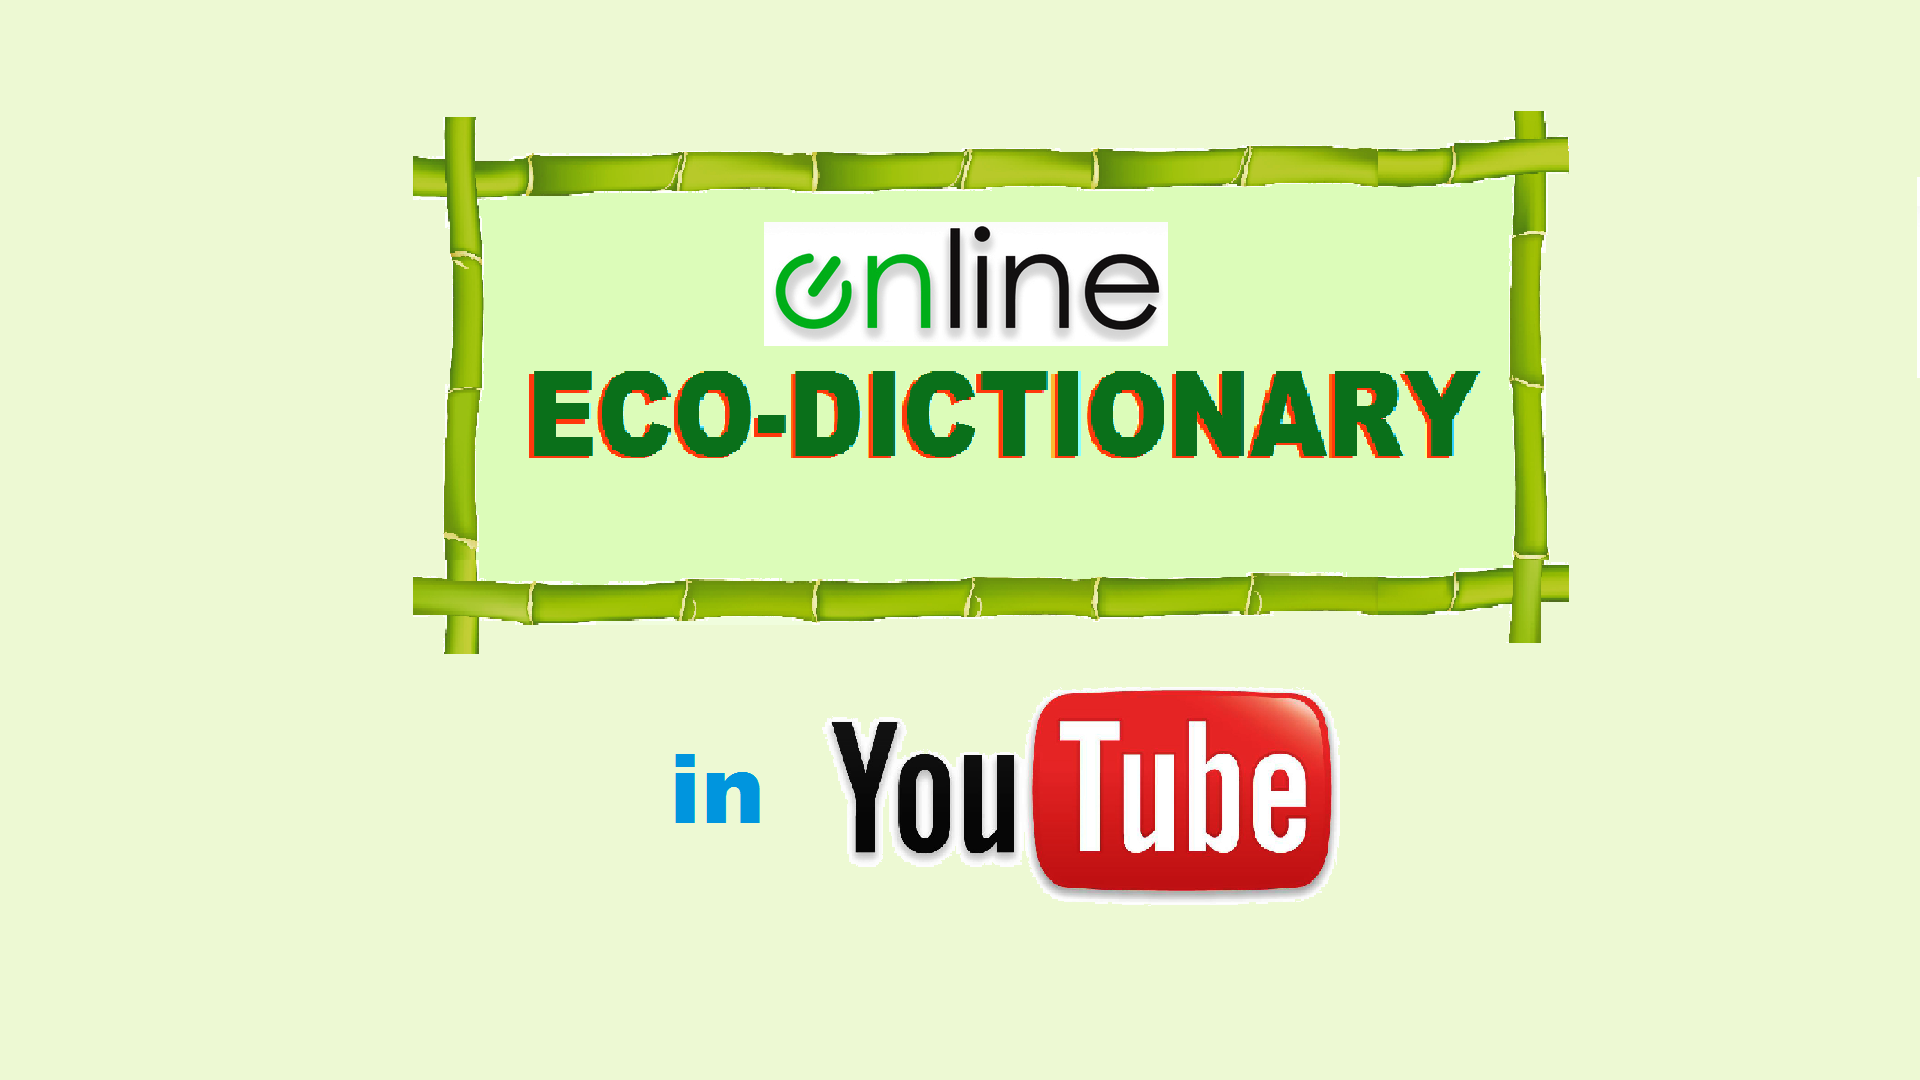 Online EcoDictionary in video format